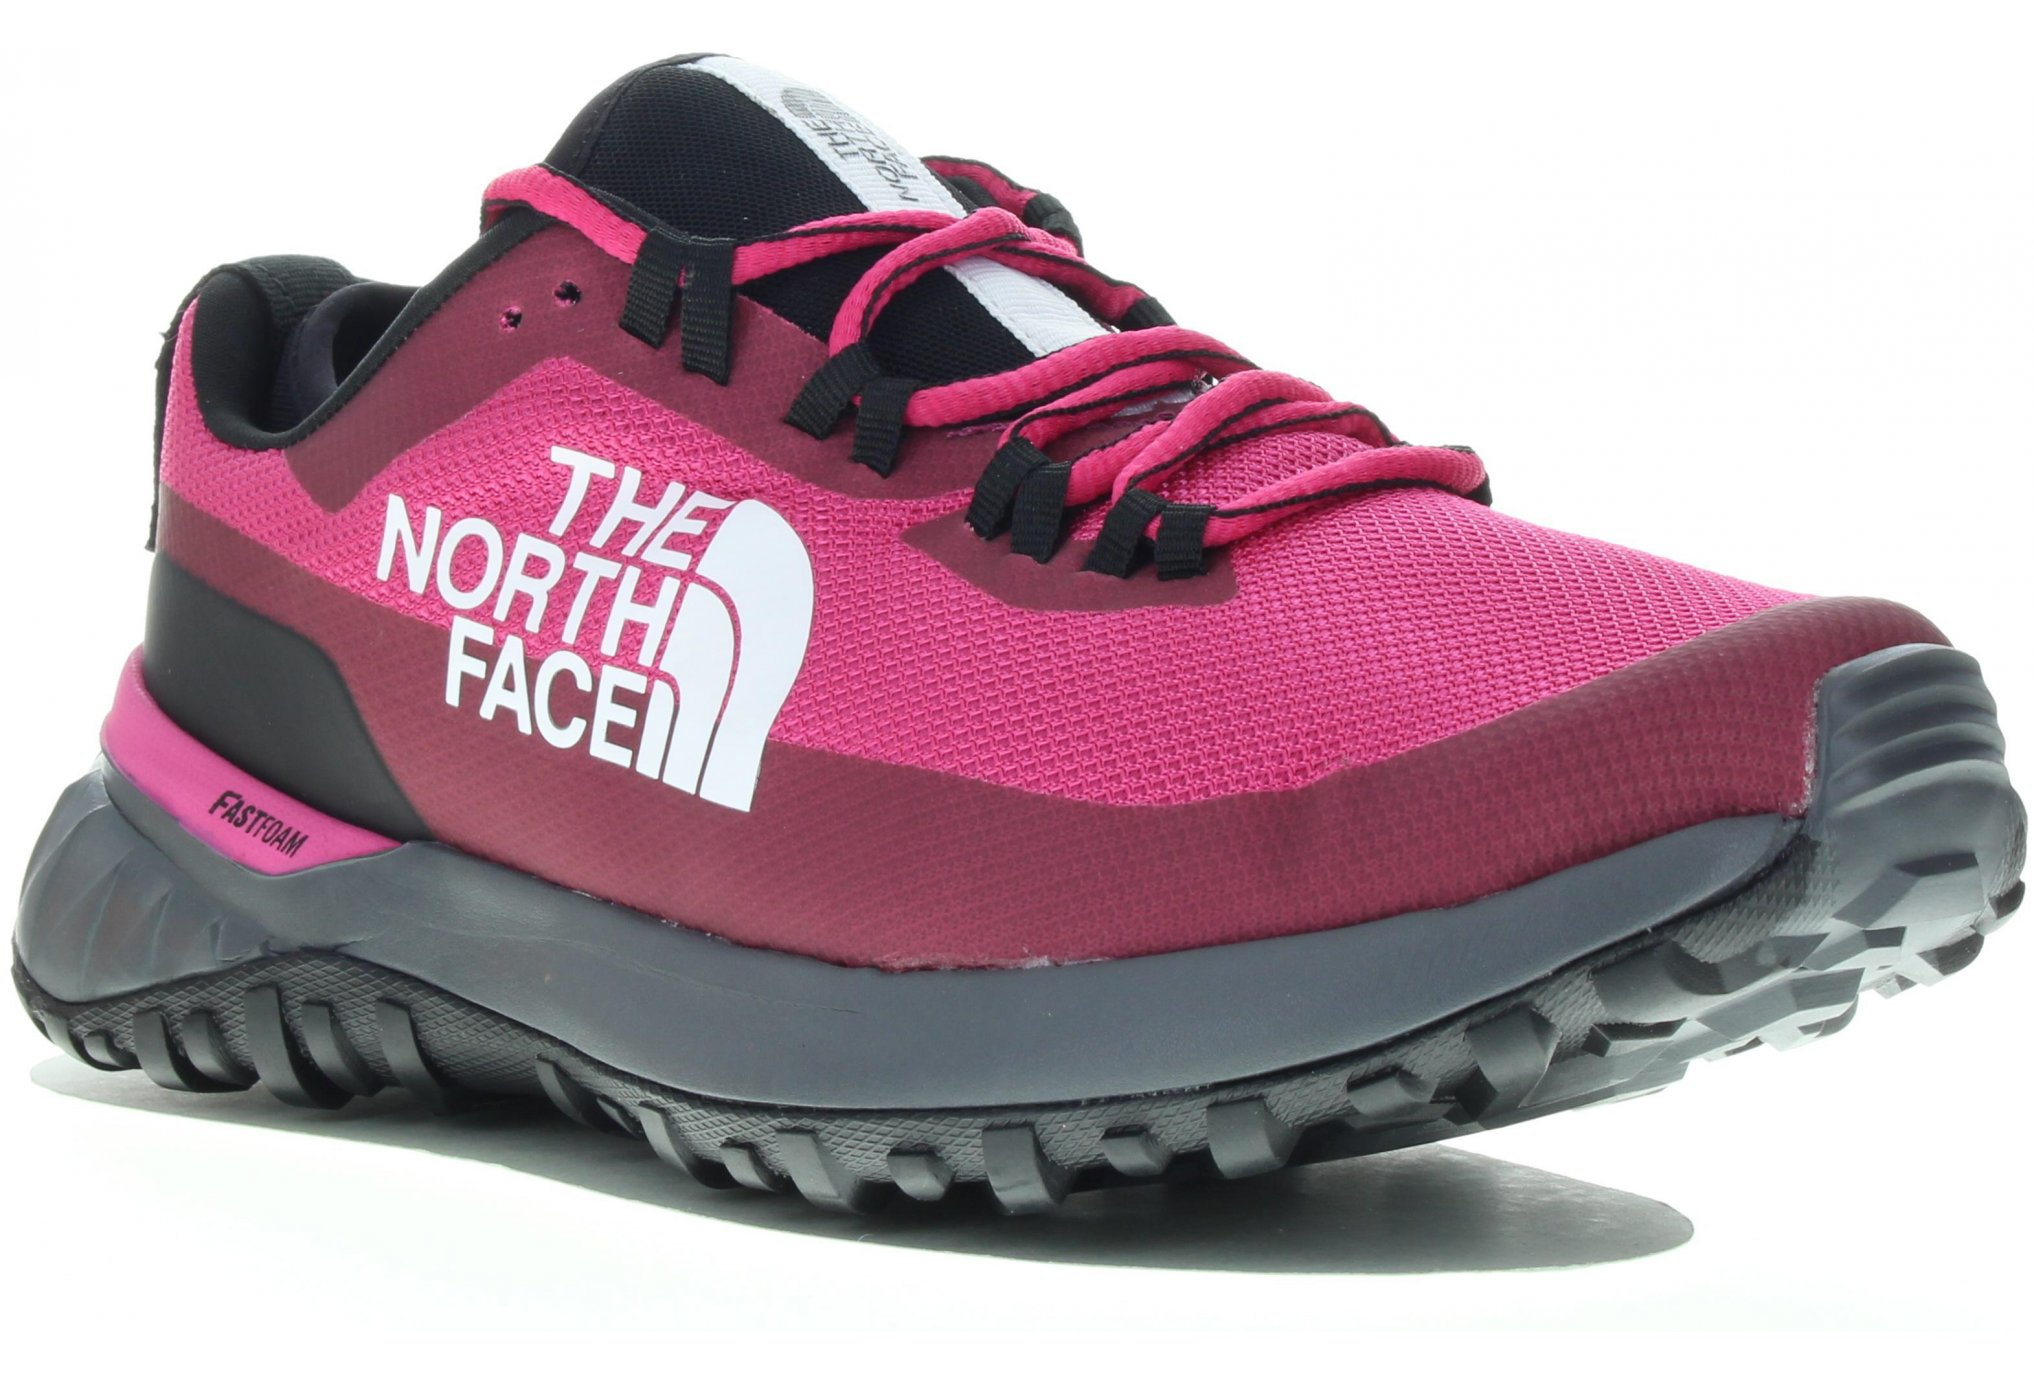 The North Face Ultra Traction W Chaussures running femme